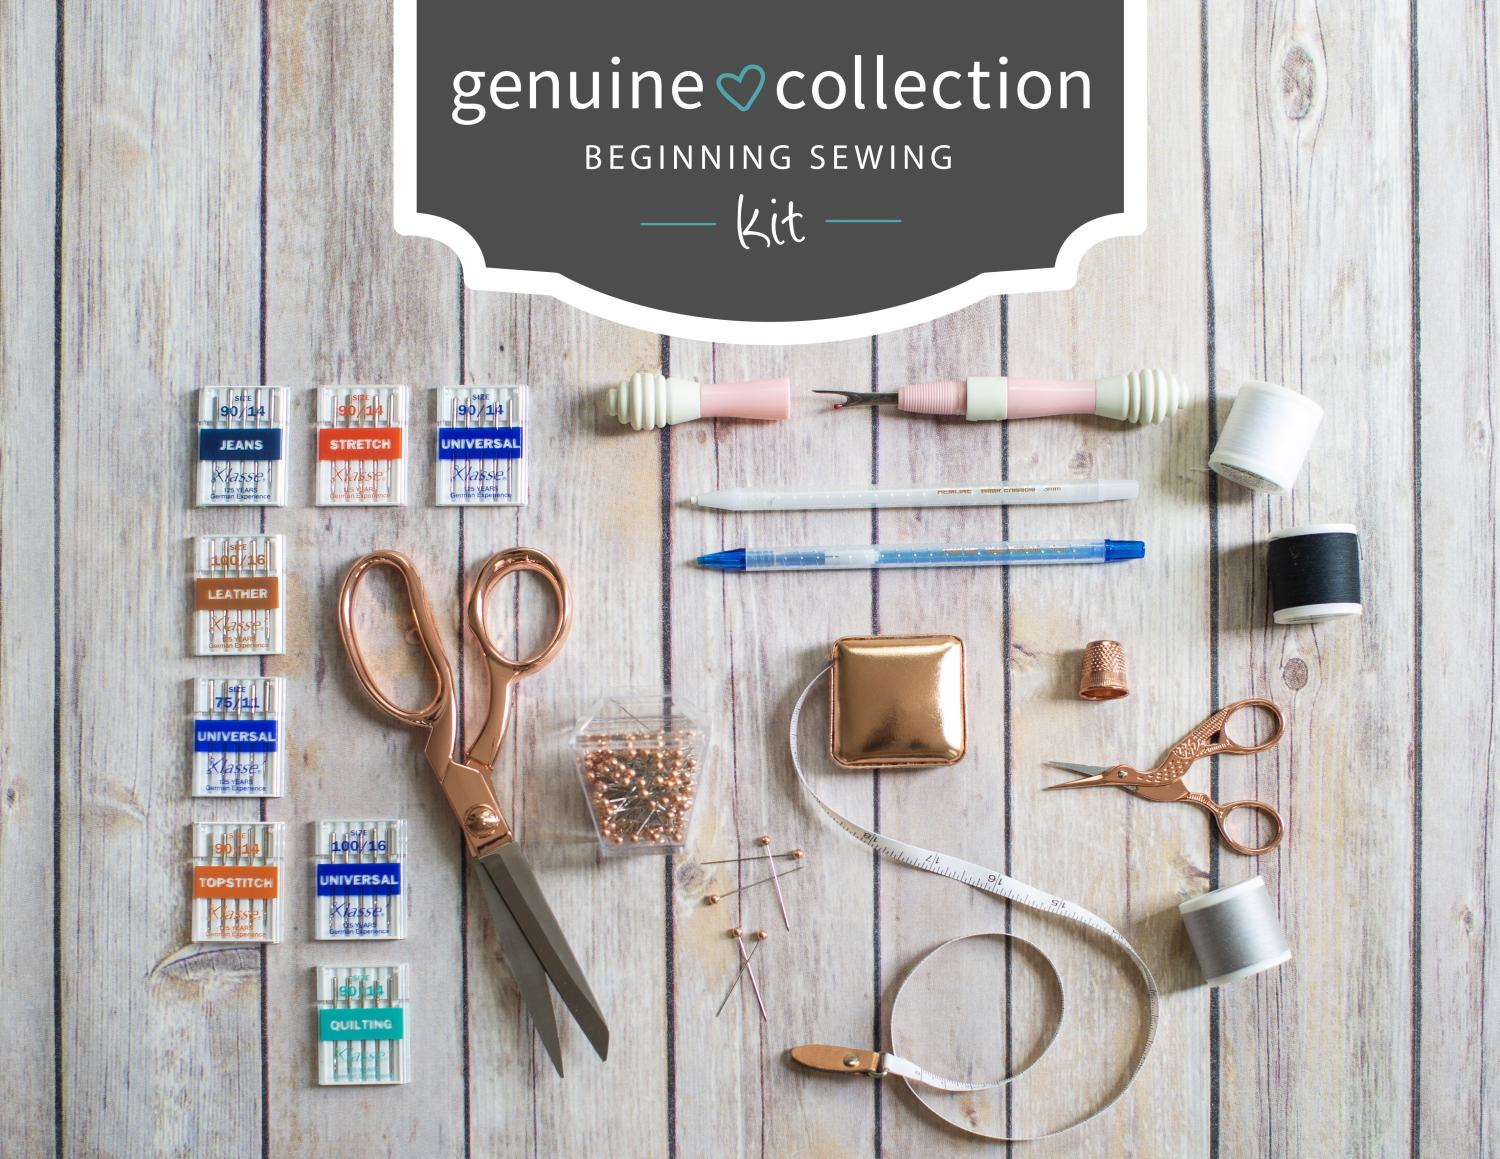 BABY LOCK GENUINE COLLECTIONSEWING KIT